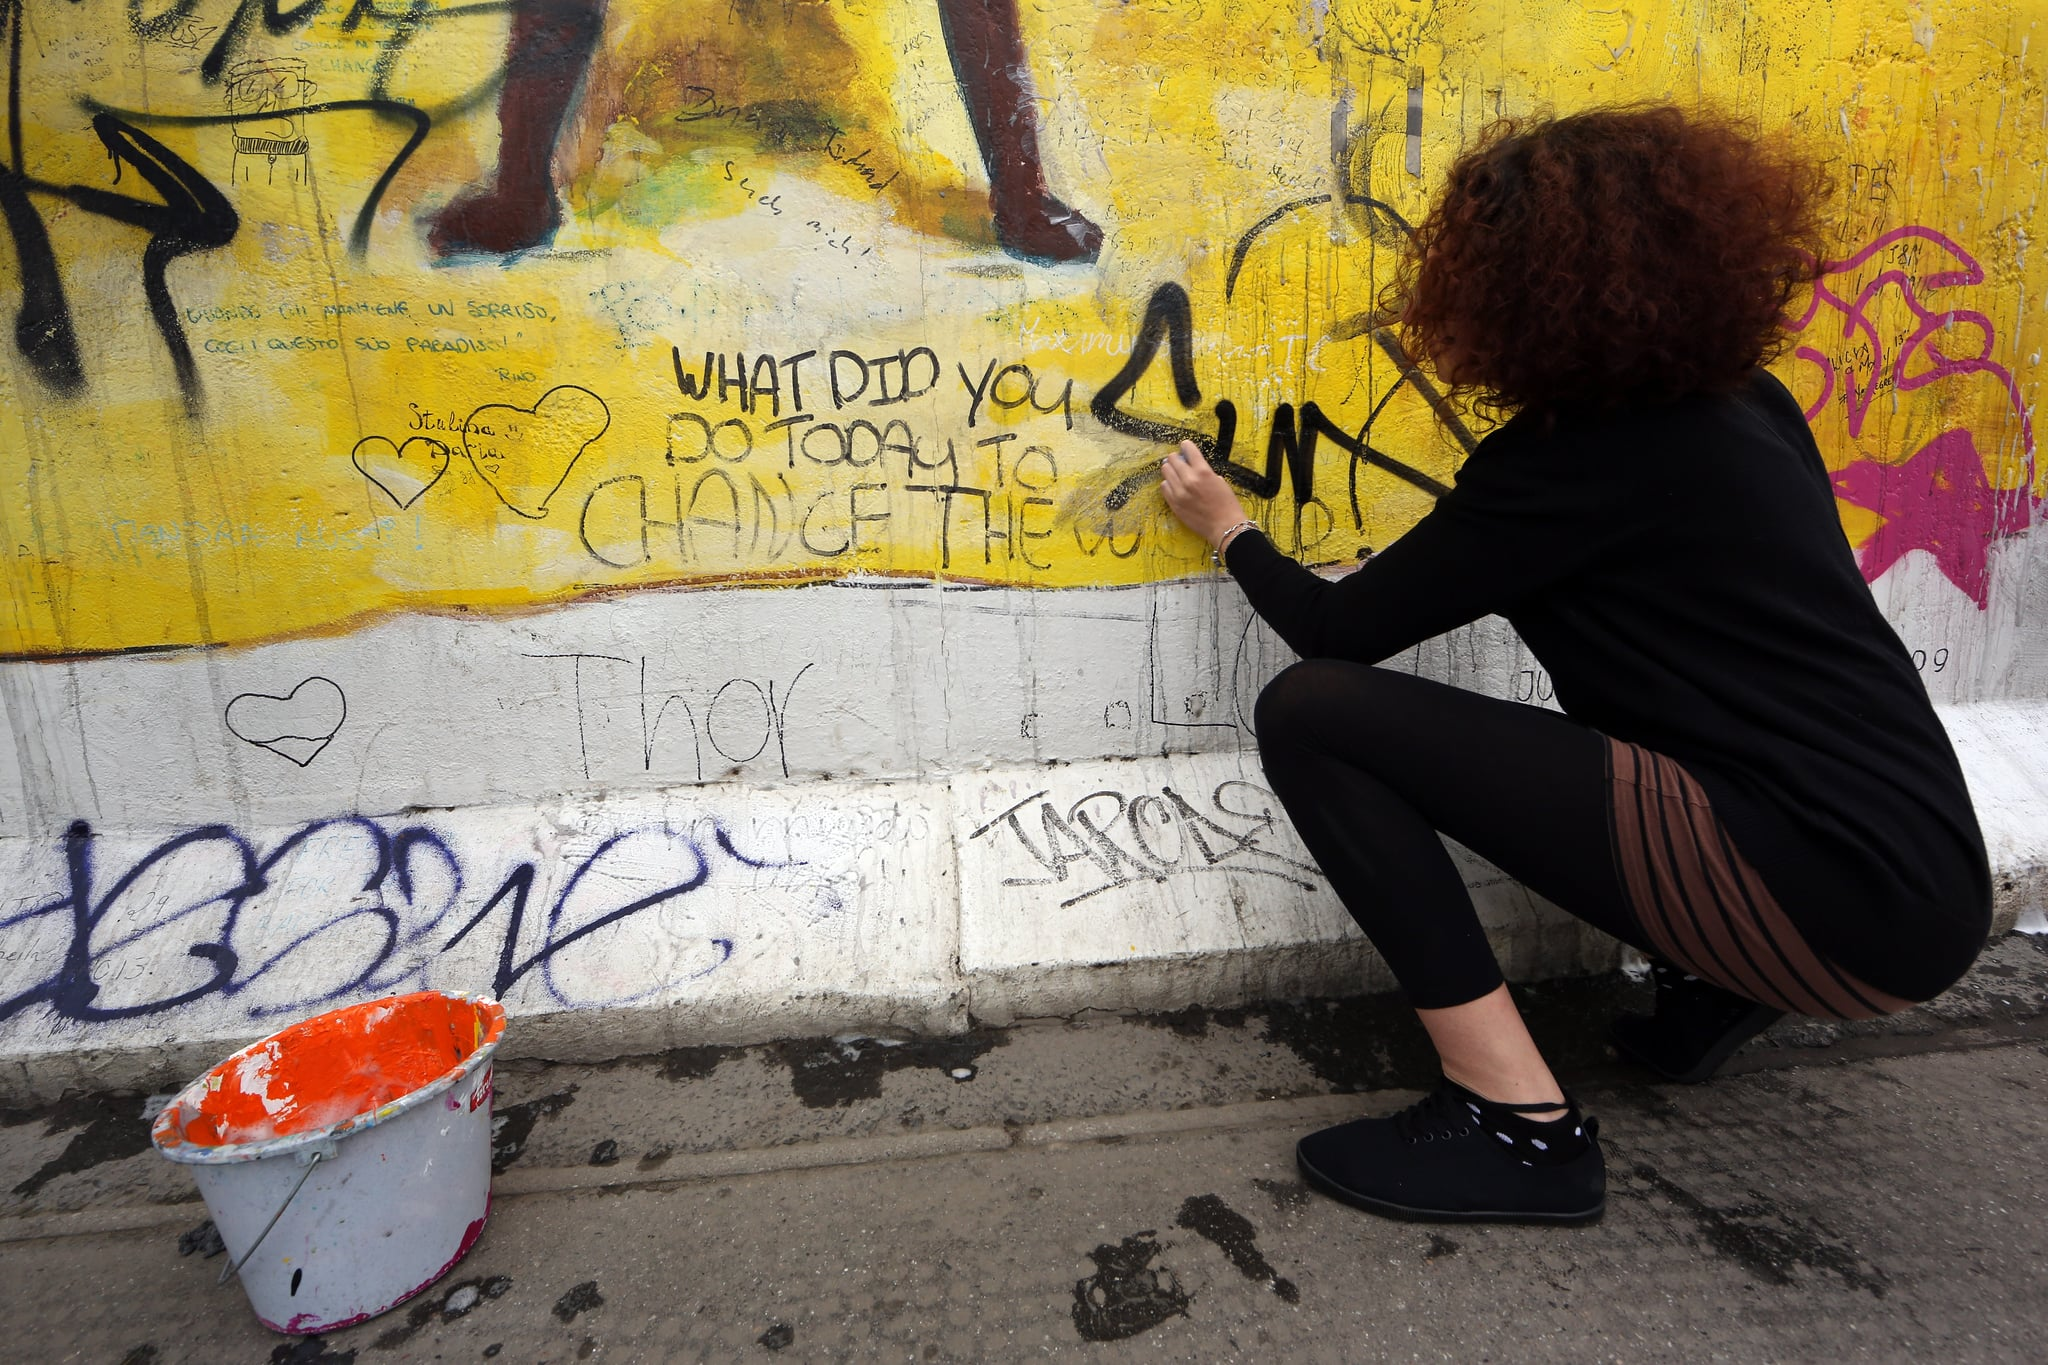 Interracial Couple Fined For Not Removing Graffiti ...